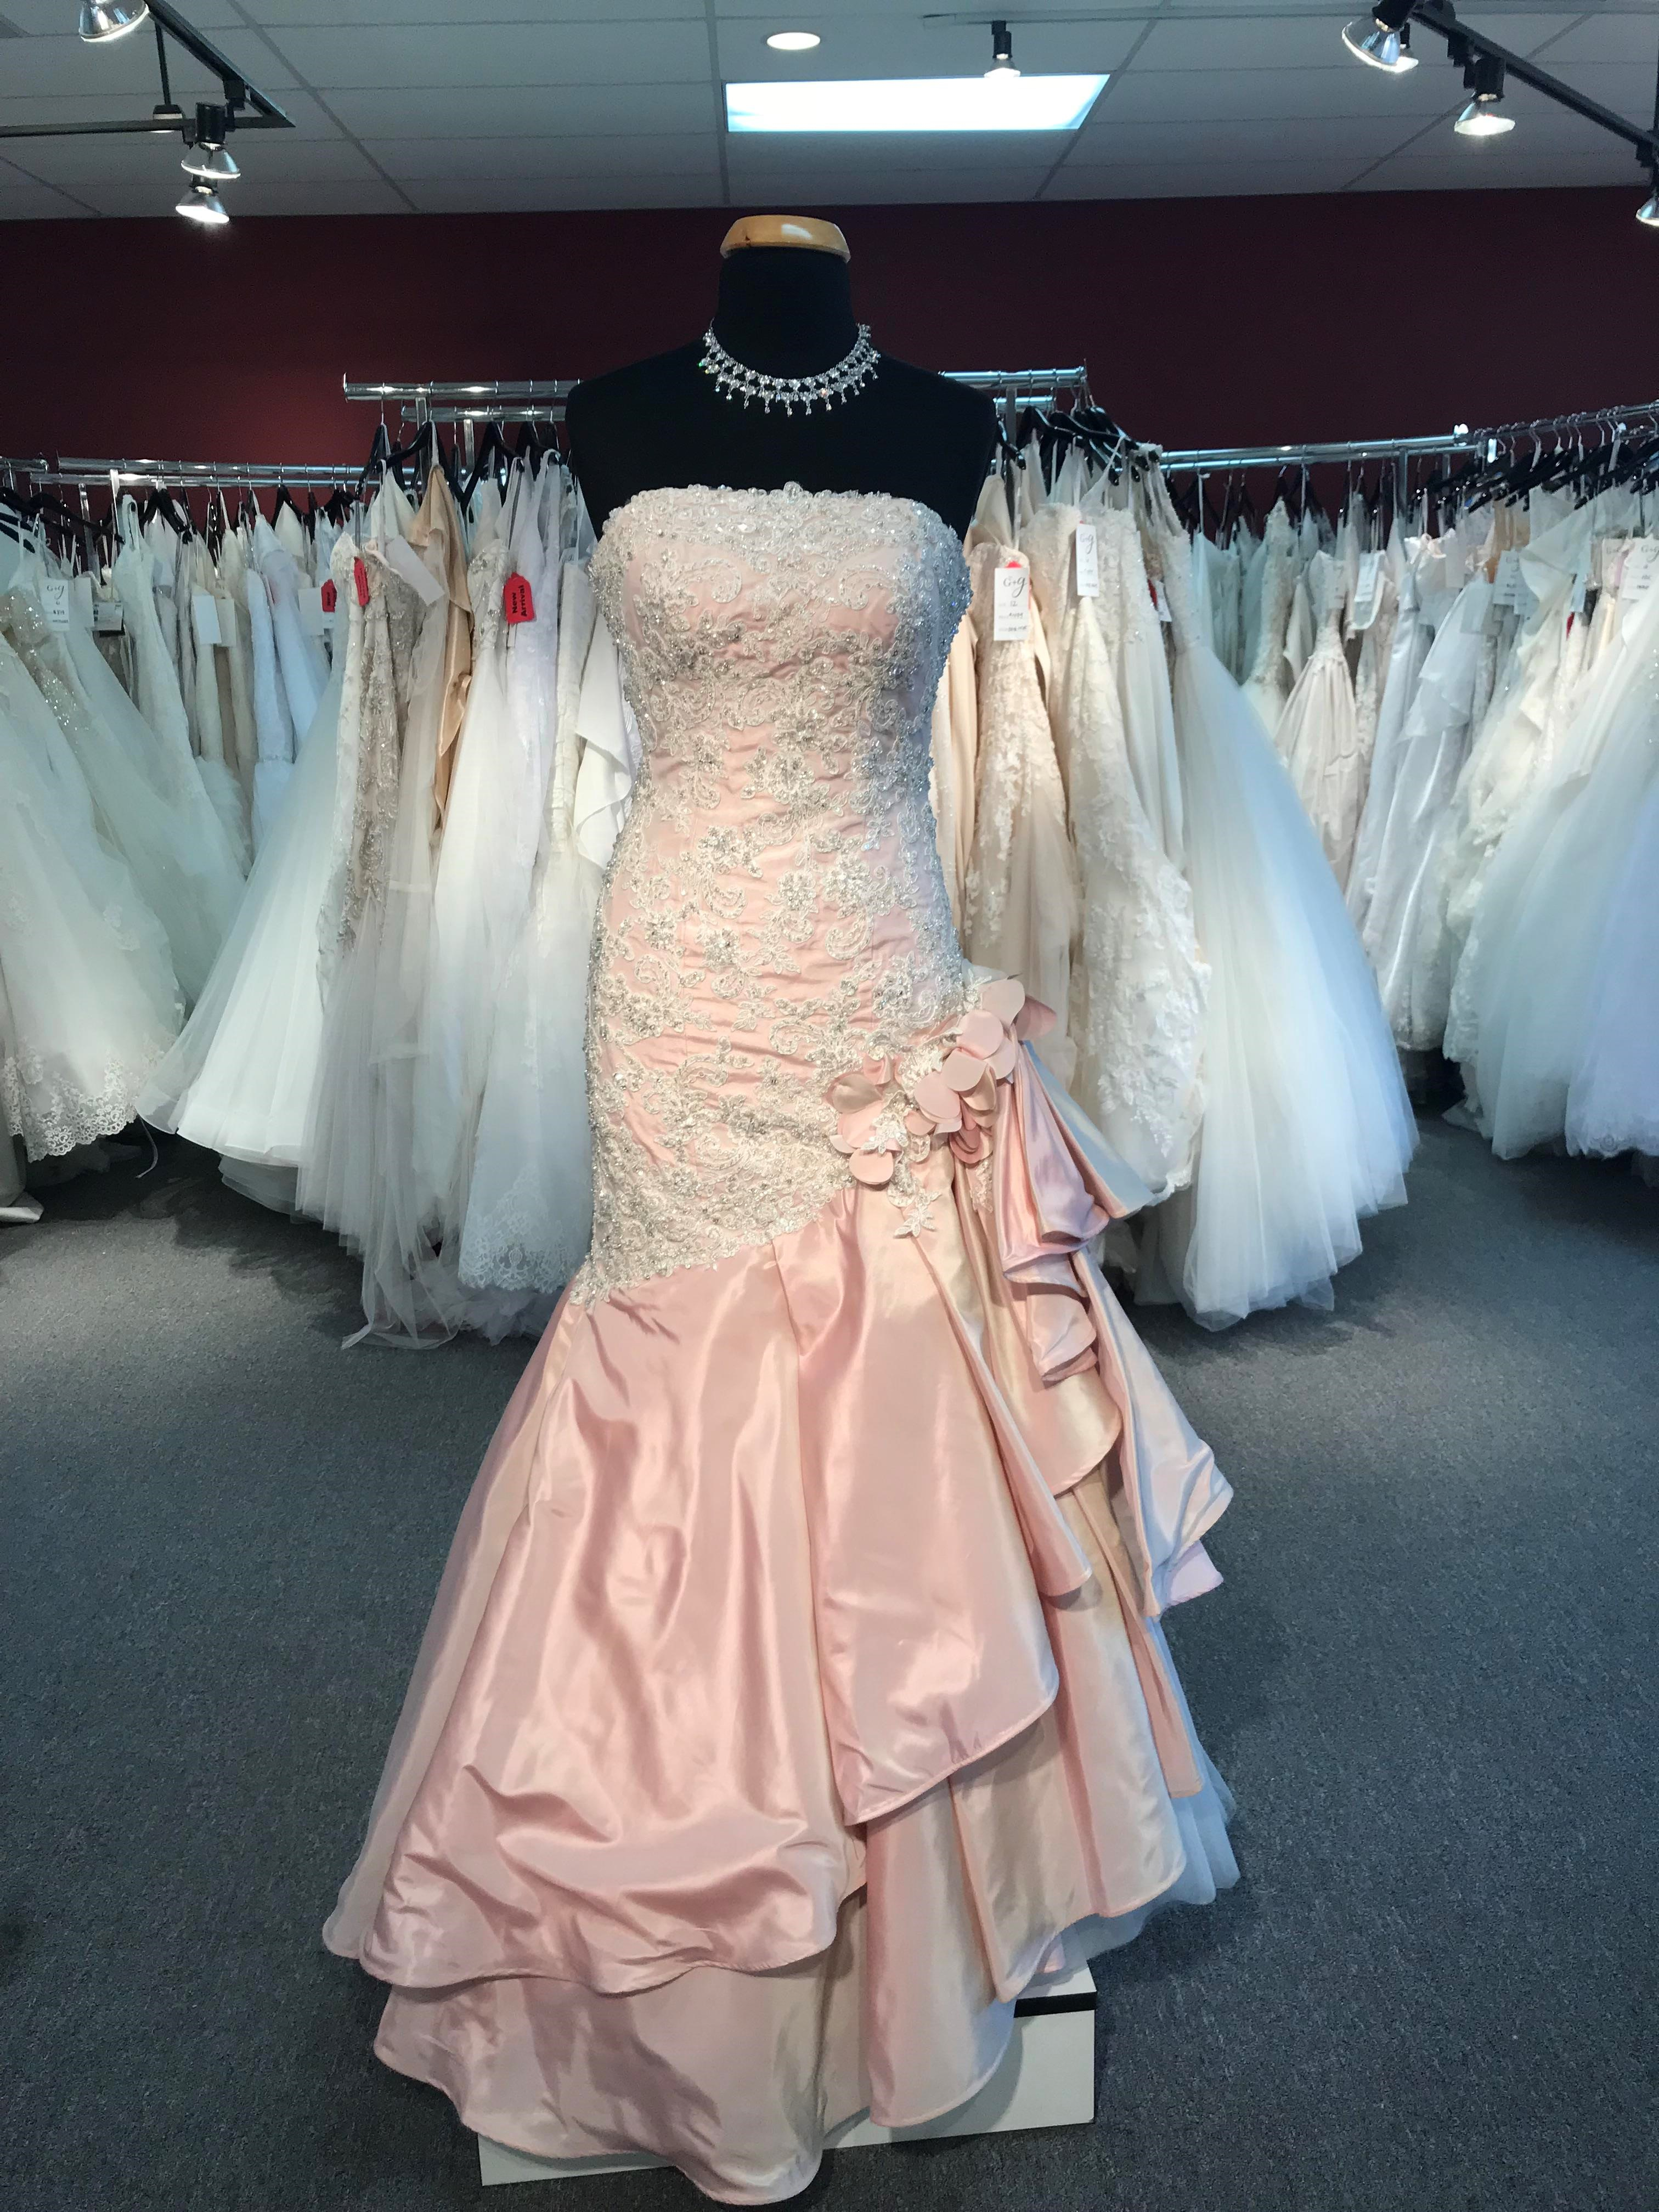 Think PINK! Pink Wedding Dresses Are on Trend for 2018!